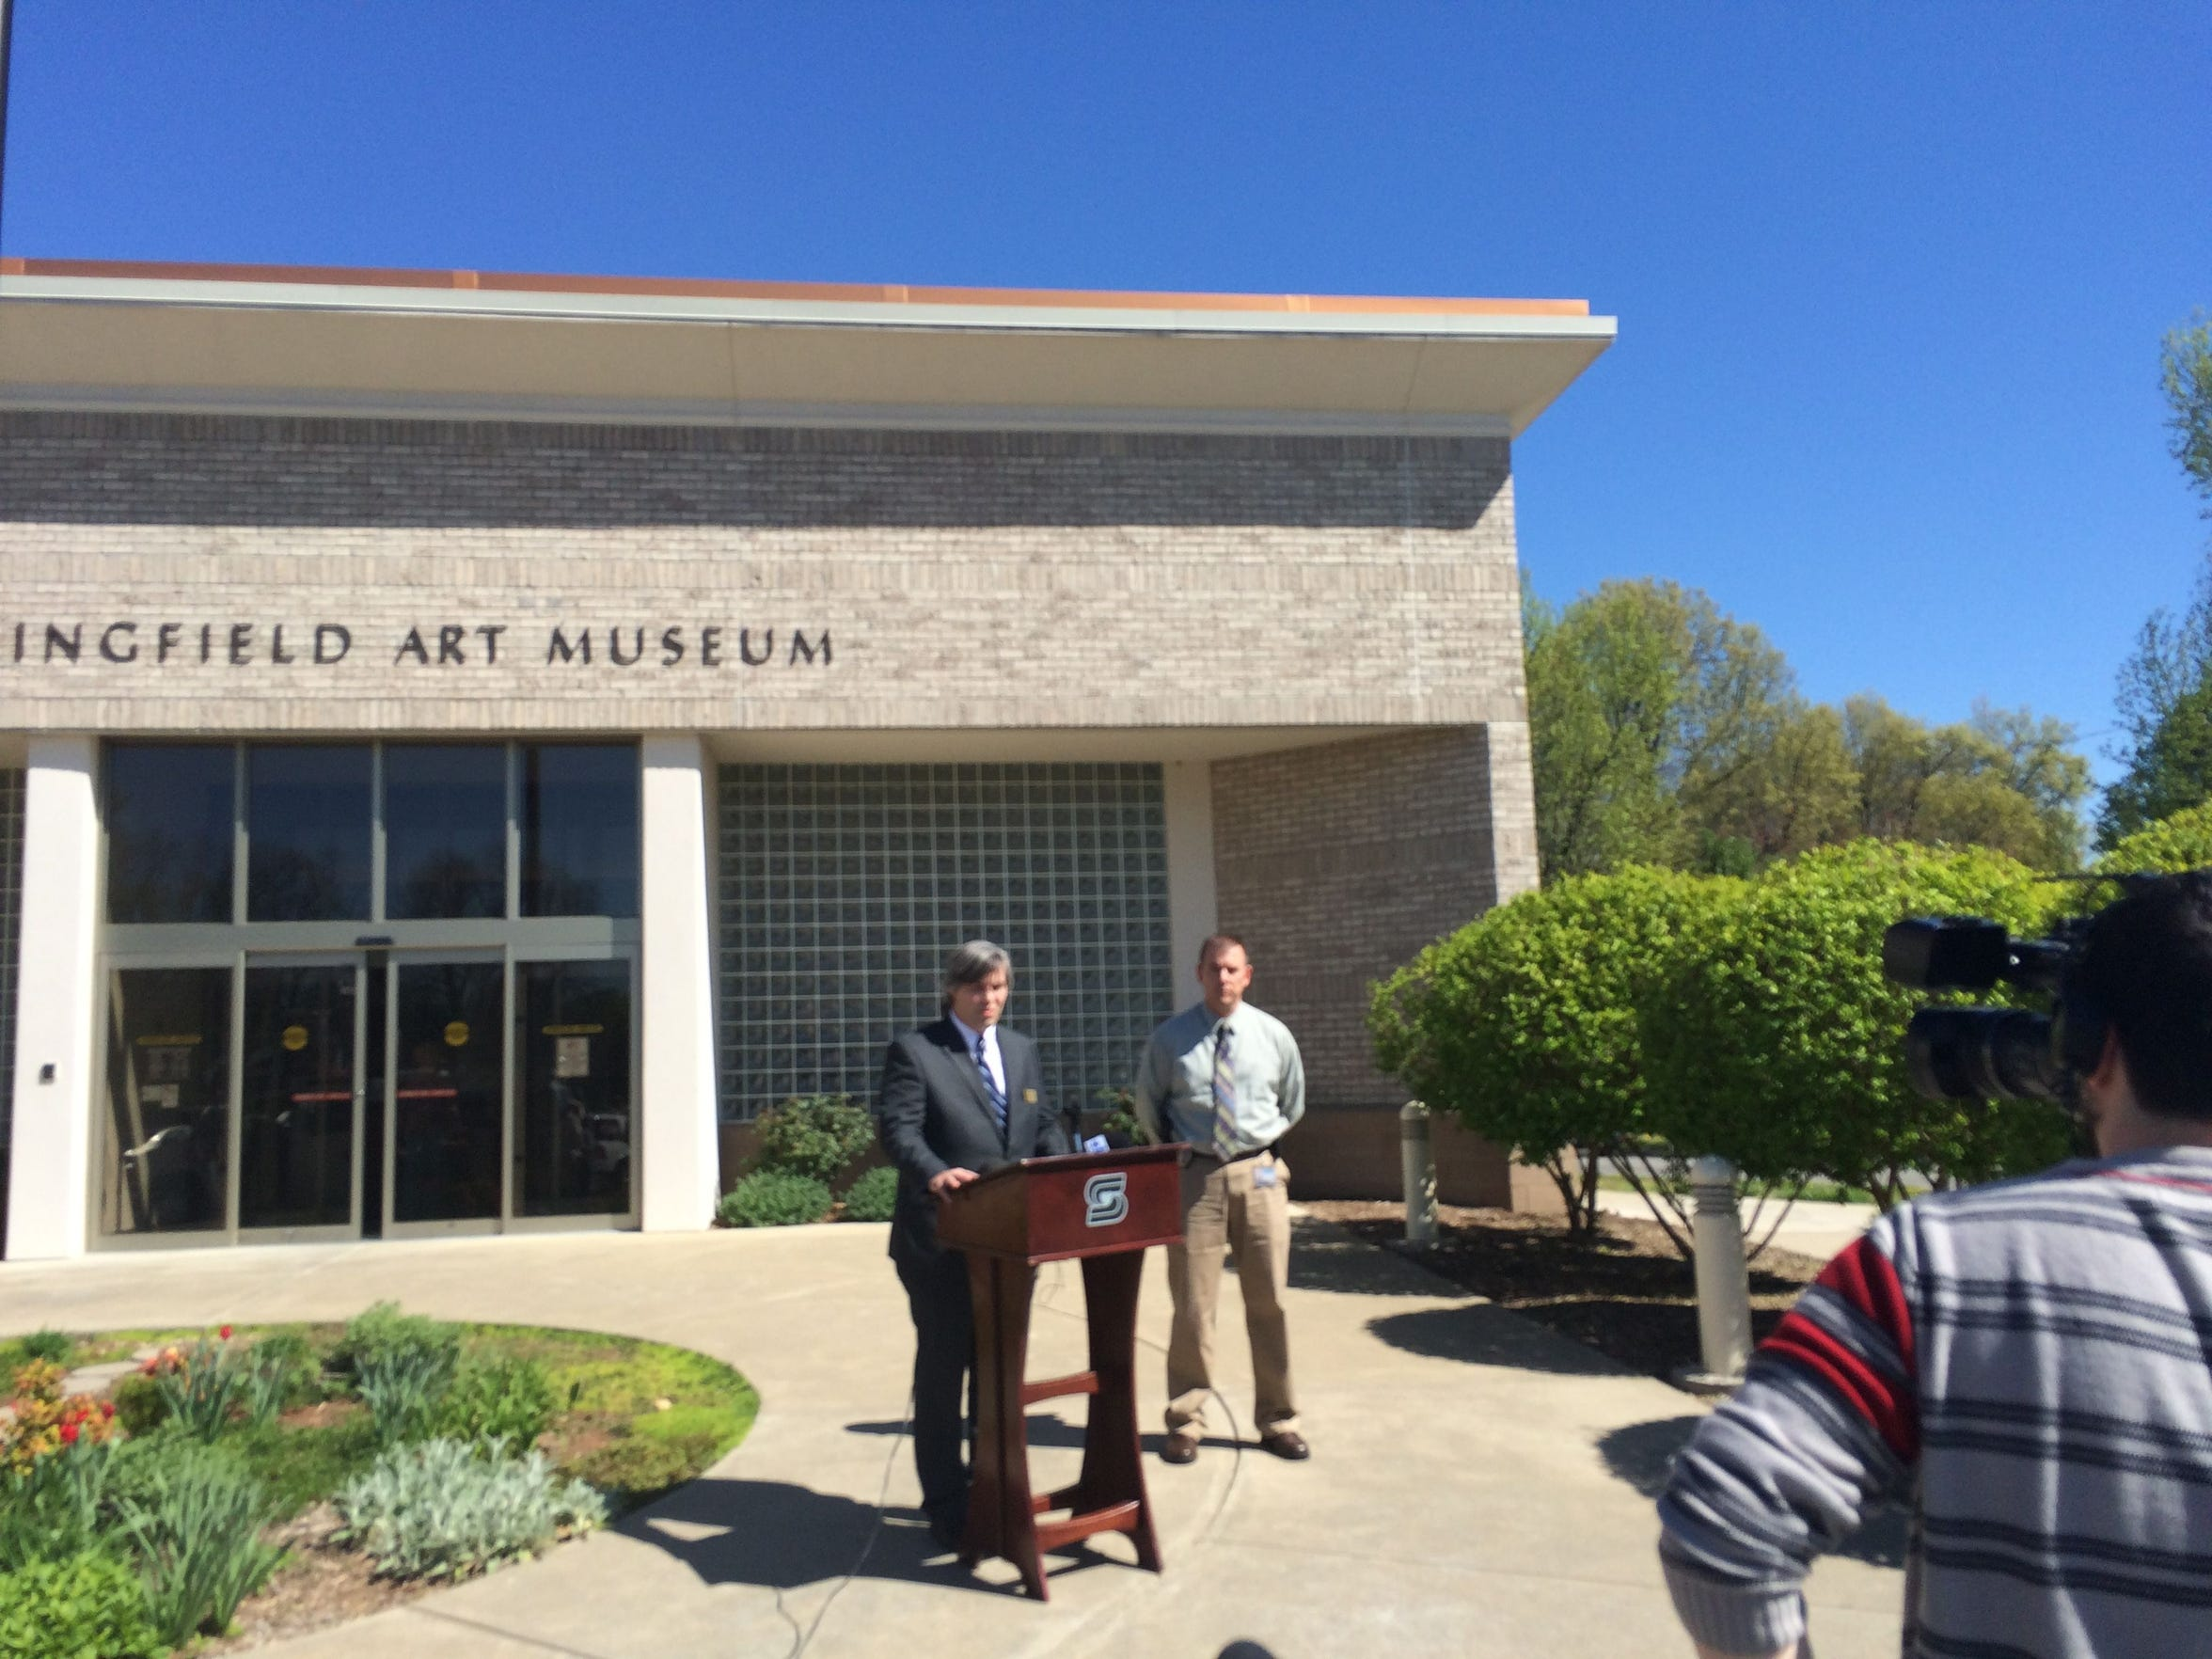 Museum Director Nick Nelson talks about the Andy Warhol theft at a press conference outside Springfield Art Museum a few days after the crime.